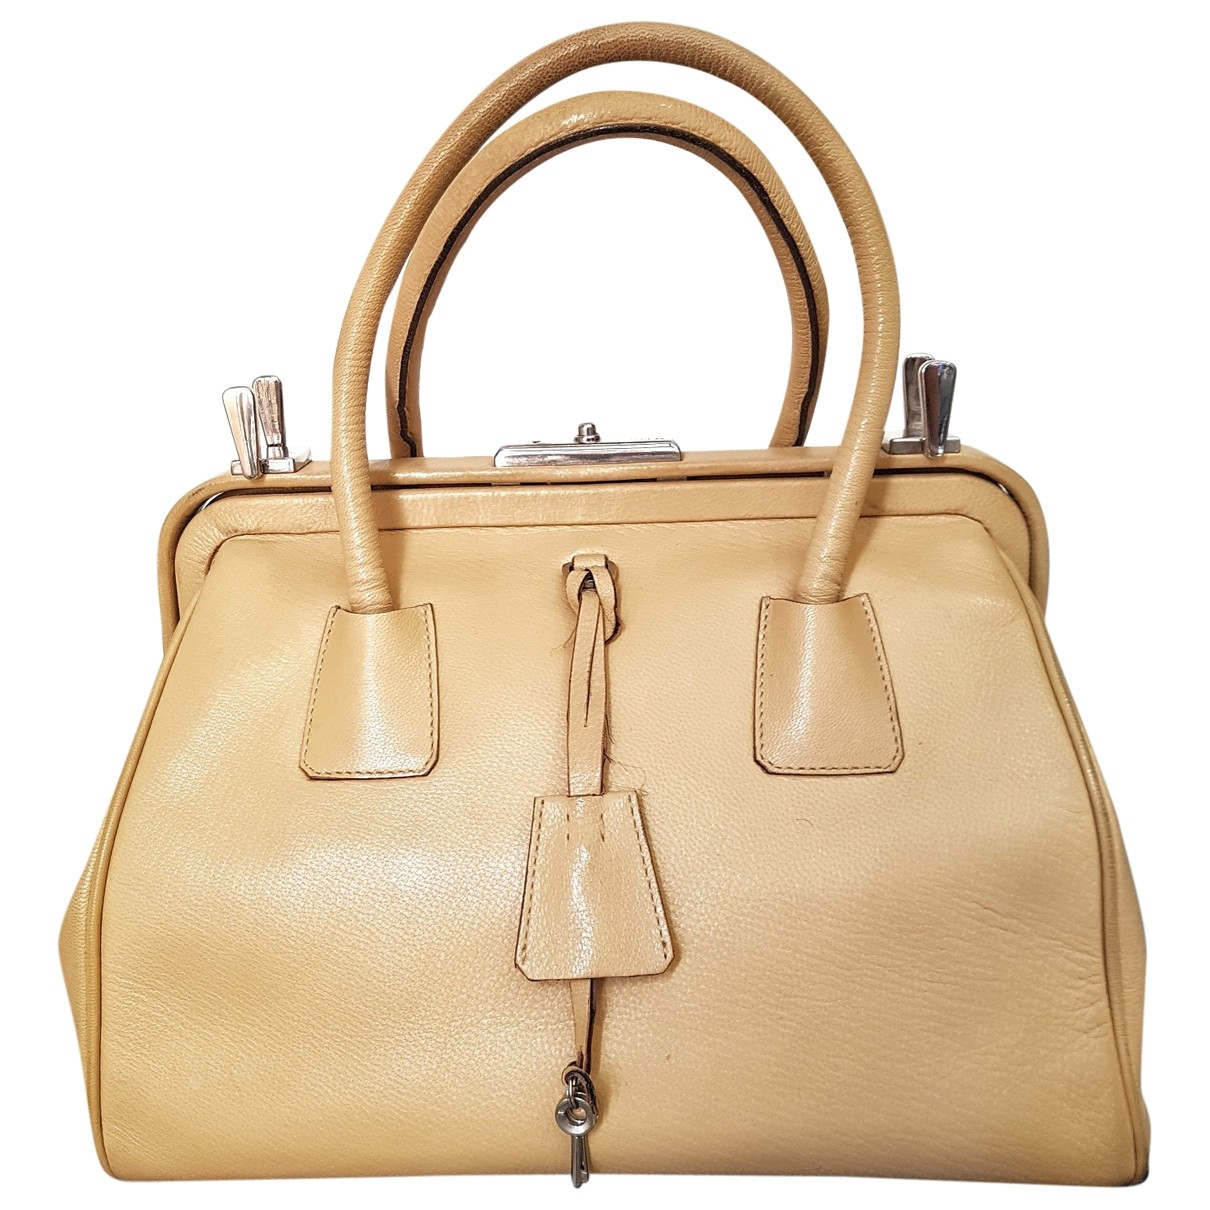 Prada \N Beige Leather handbag for Women \N